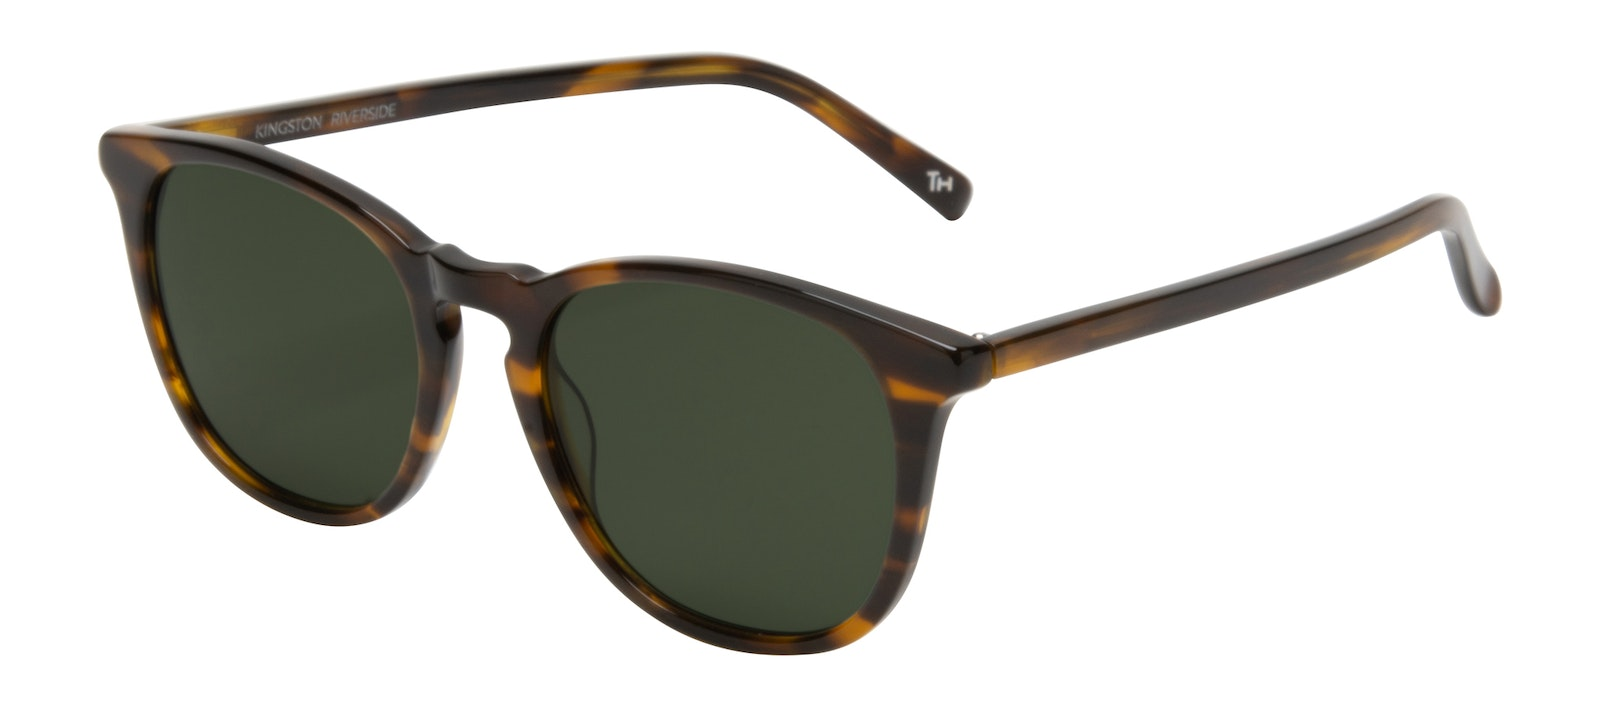 Affordable Fashion Glasses Round Sunglasses Men Kingston Riverside Tilt